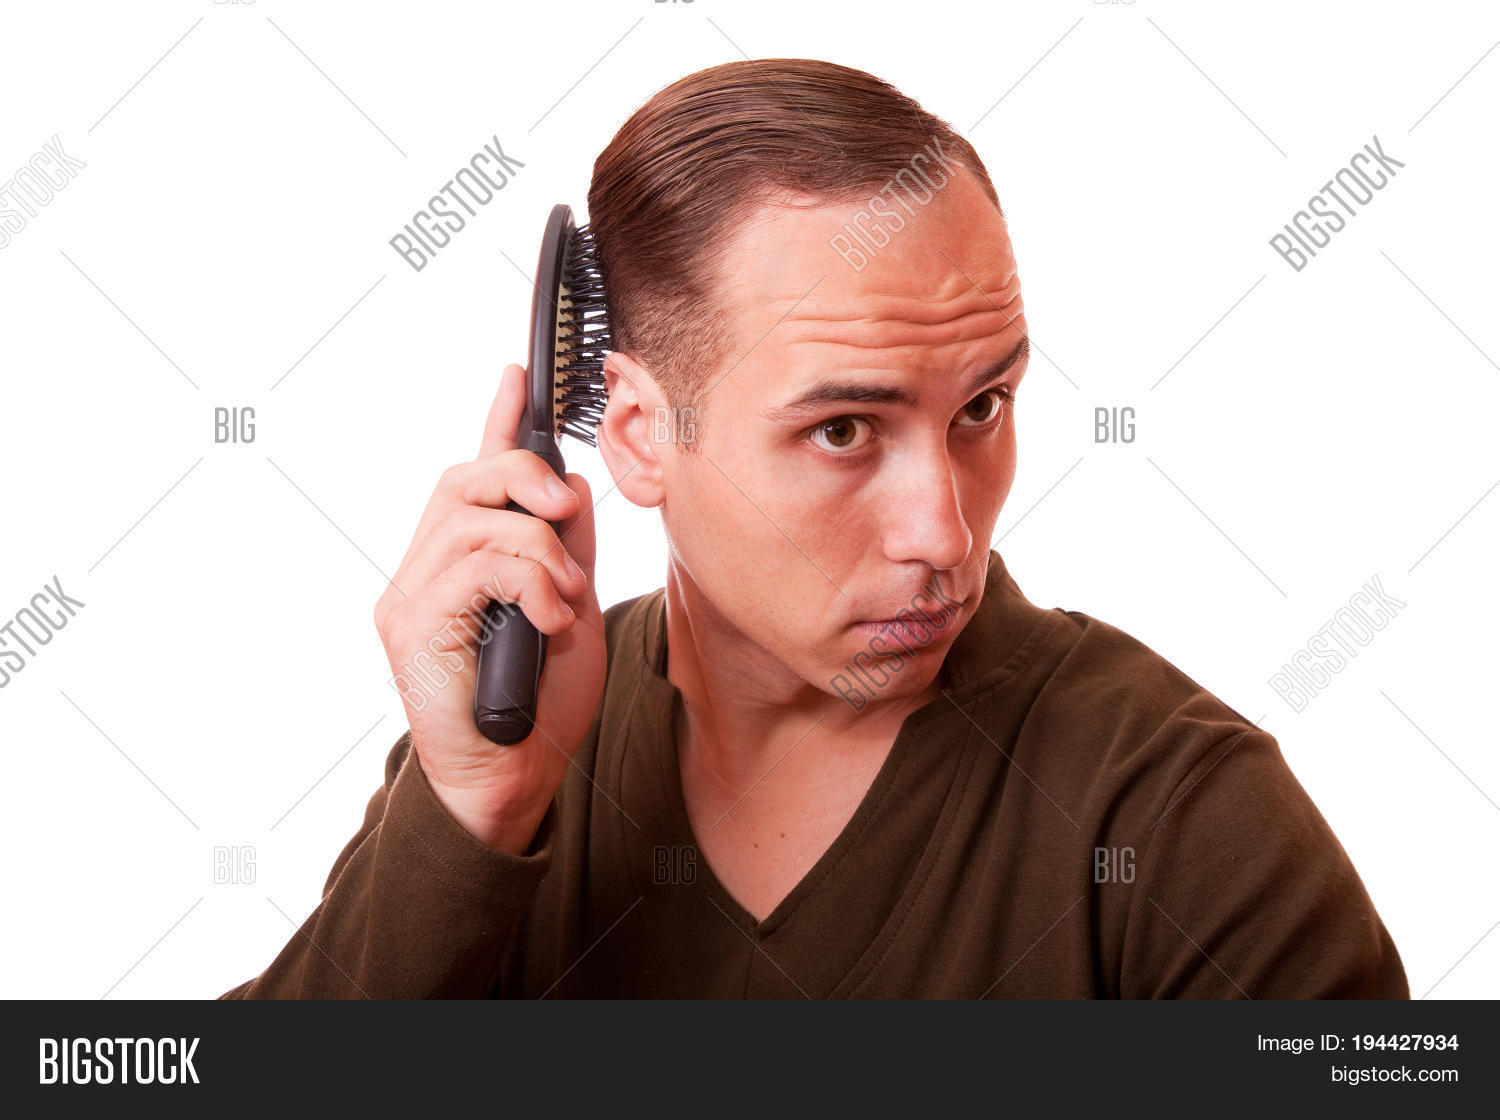 Young Man Combing Hair Image Photo Free Trial Bigstock